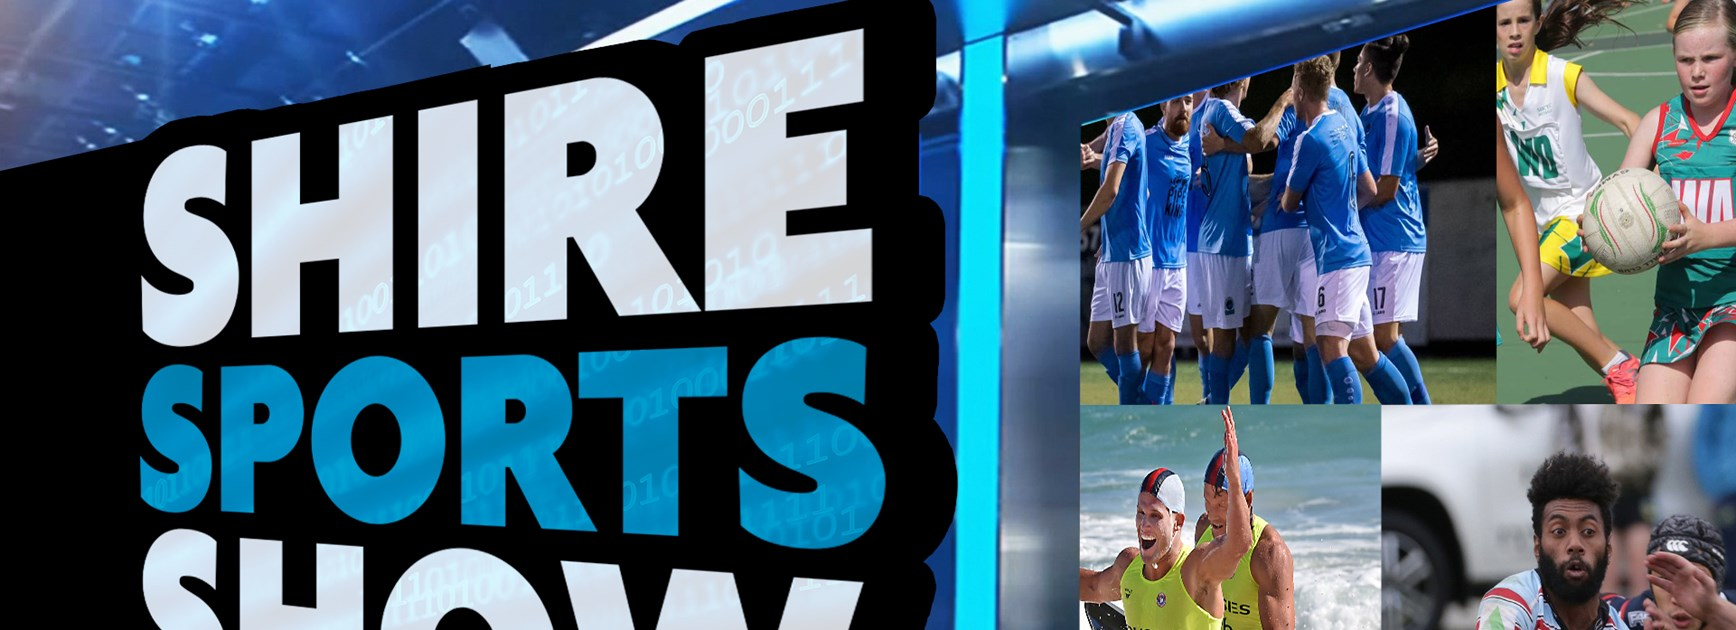 The Shire Sports Show – July 3, 2018